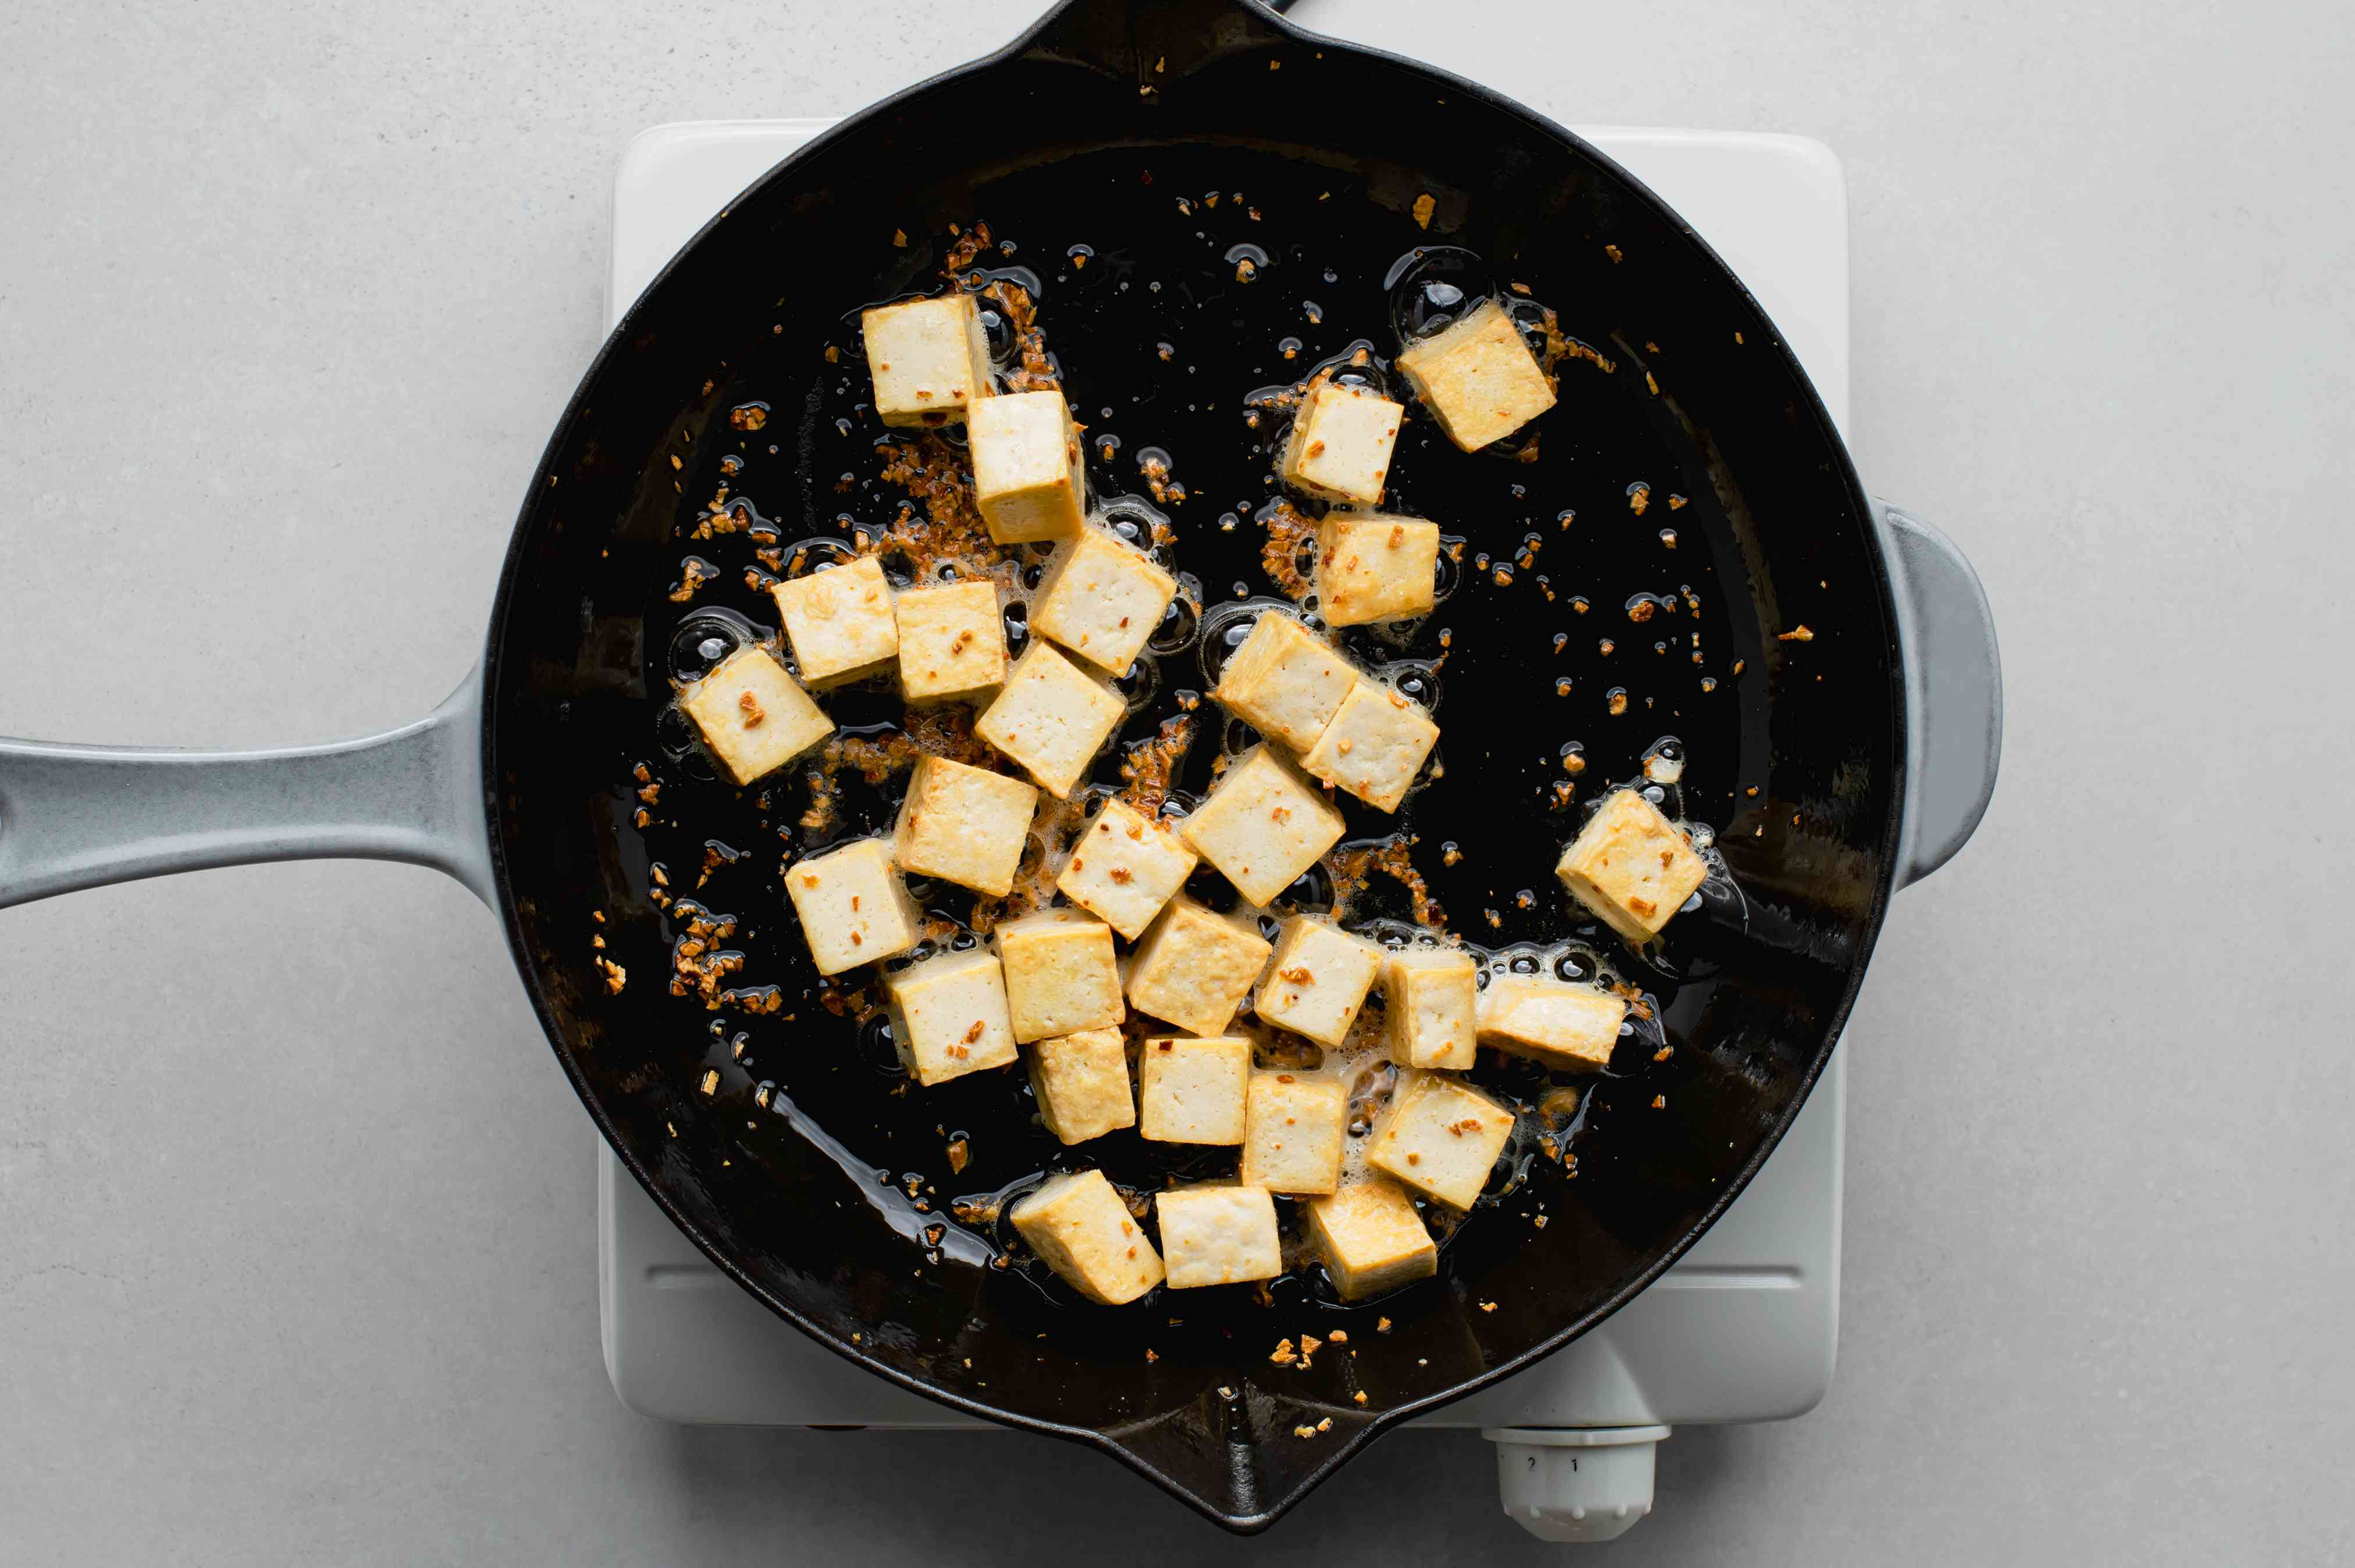 tofu and garlic in a skillet